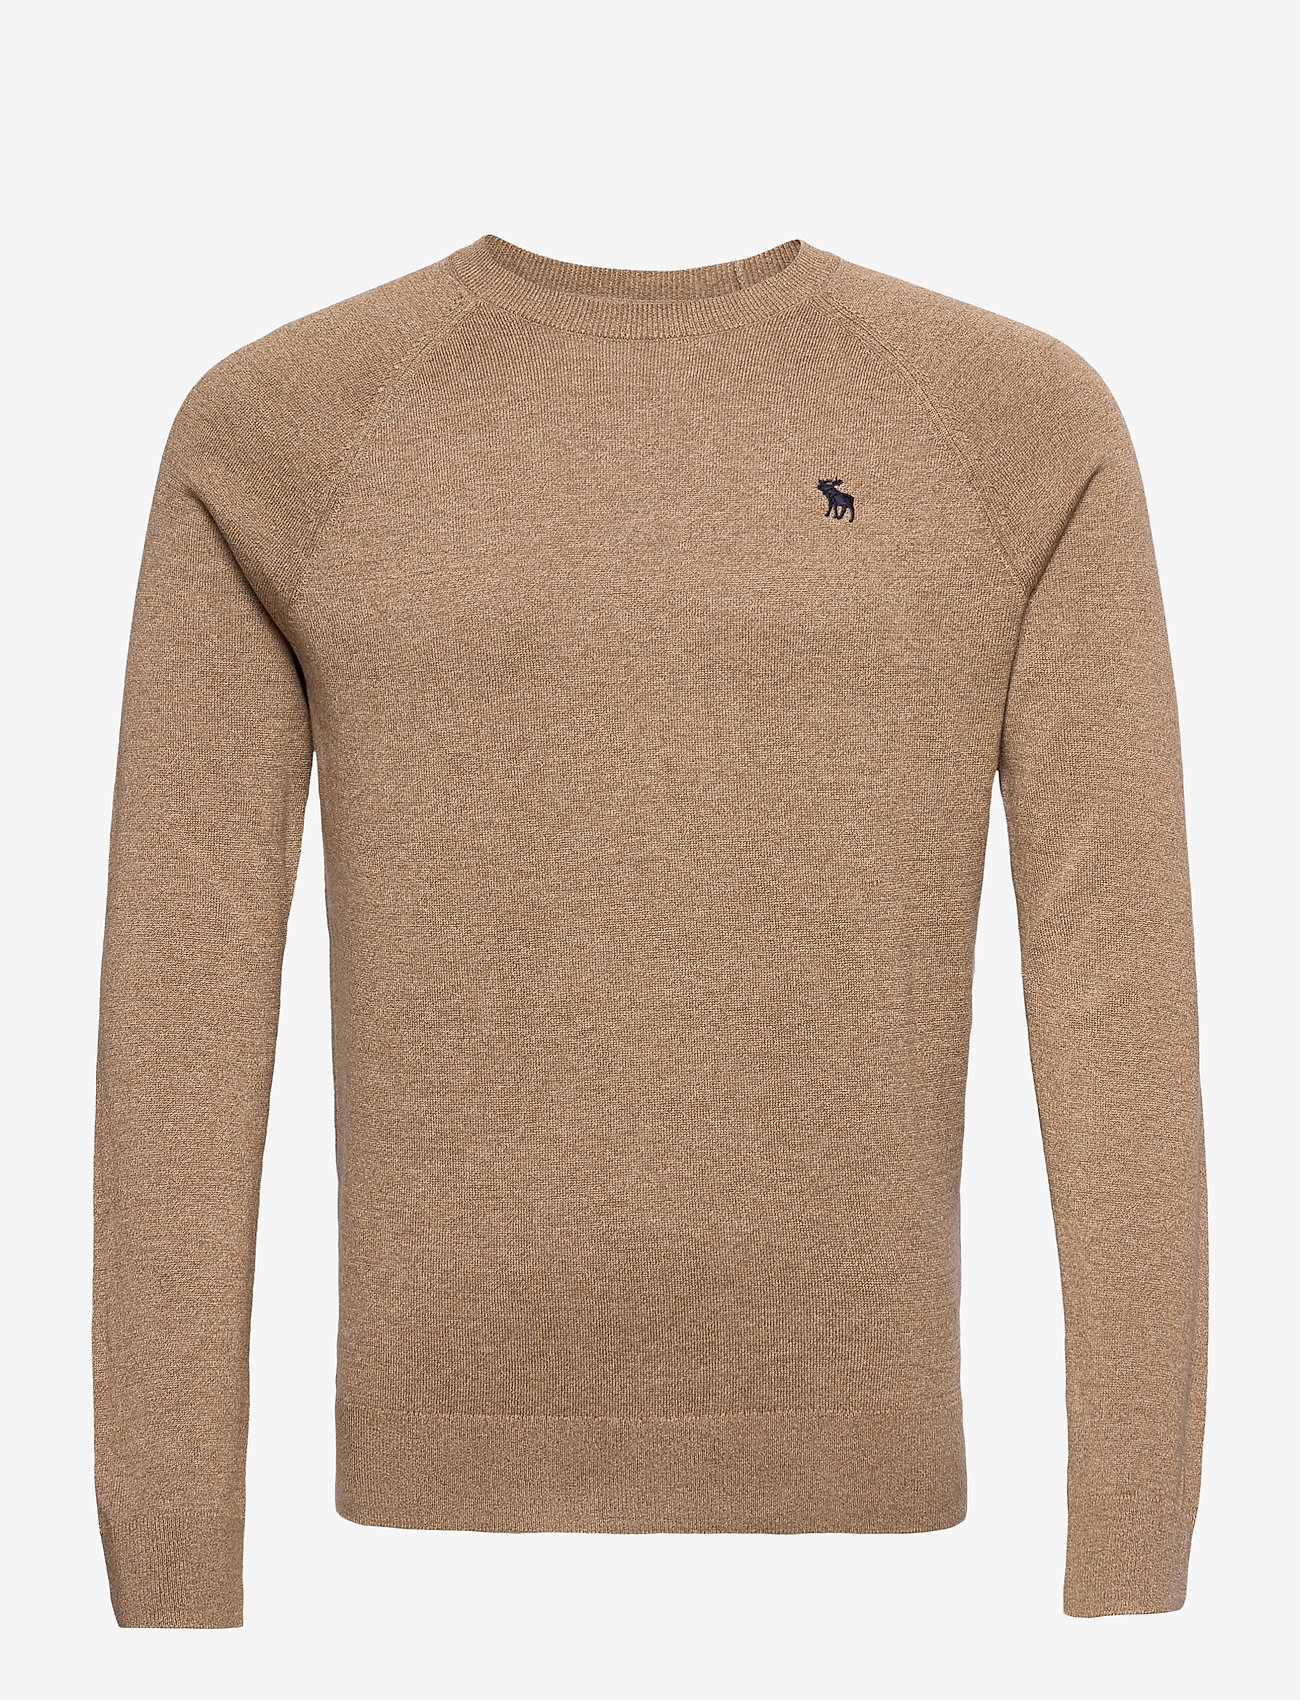 Abercrombie & Fitch - ICON CREW - tricots basiques - light brown dd - 0